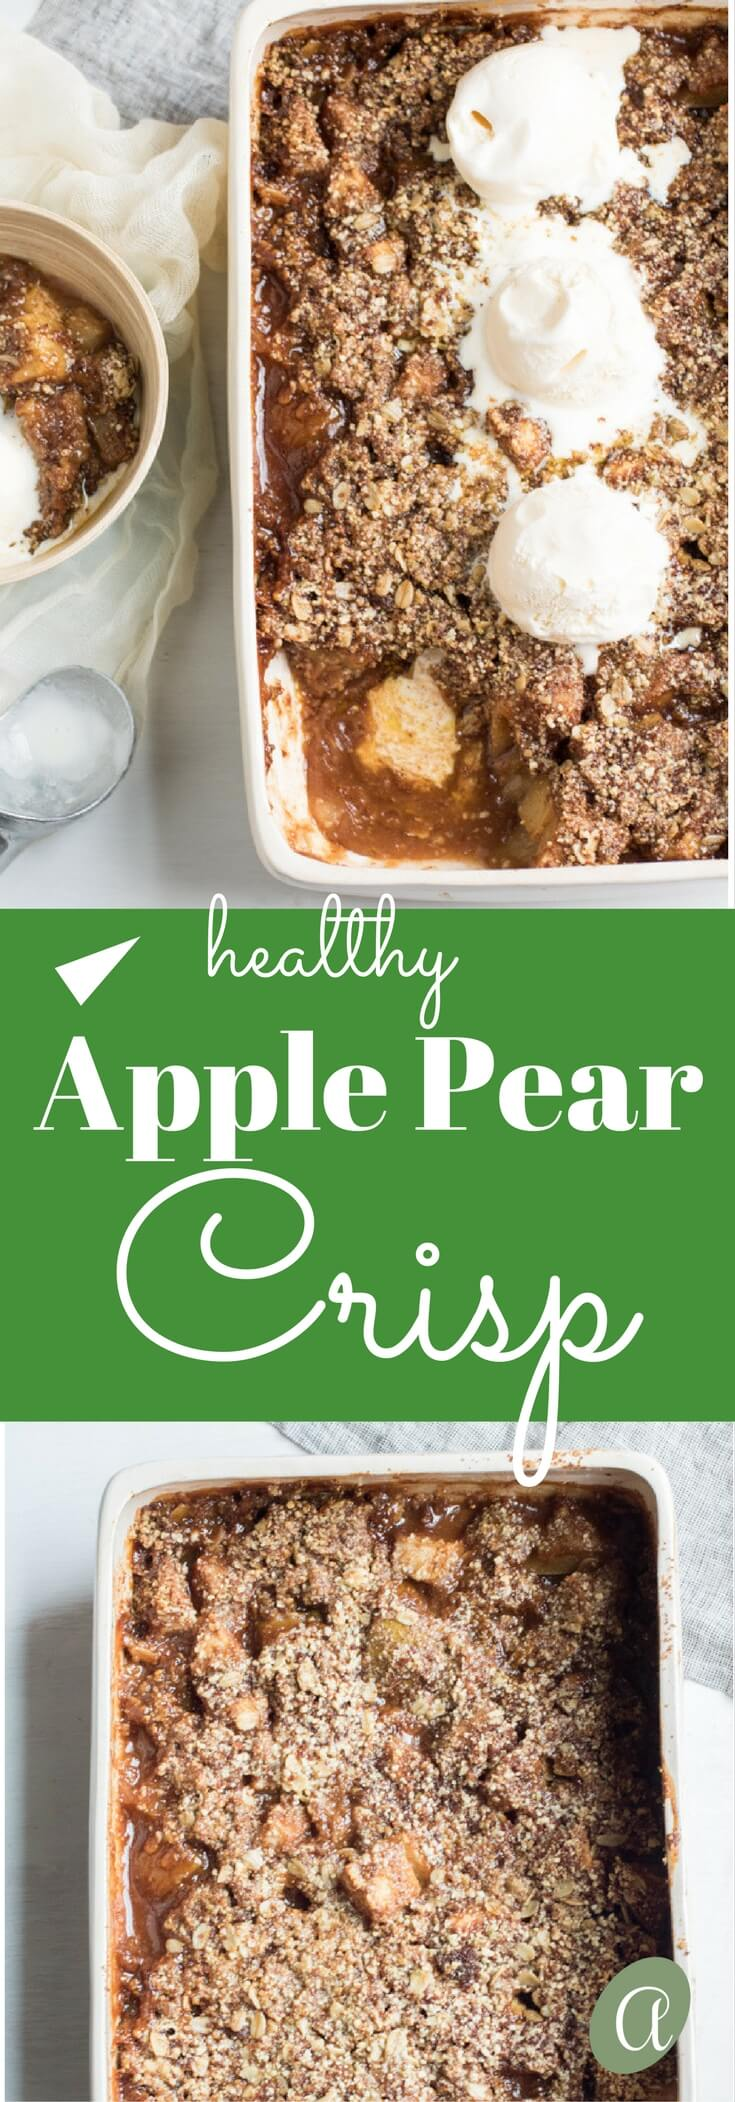 Ooey gooey sweet goodness, this apple pear crisp is insanely delicious and so easy to make! Gluten free. Topped with creamy vanilla ice cream that perfectly melts into the crisp almond, oat, and pumpkin seed topping.